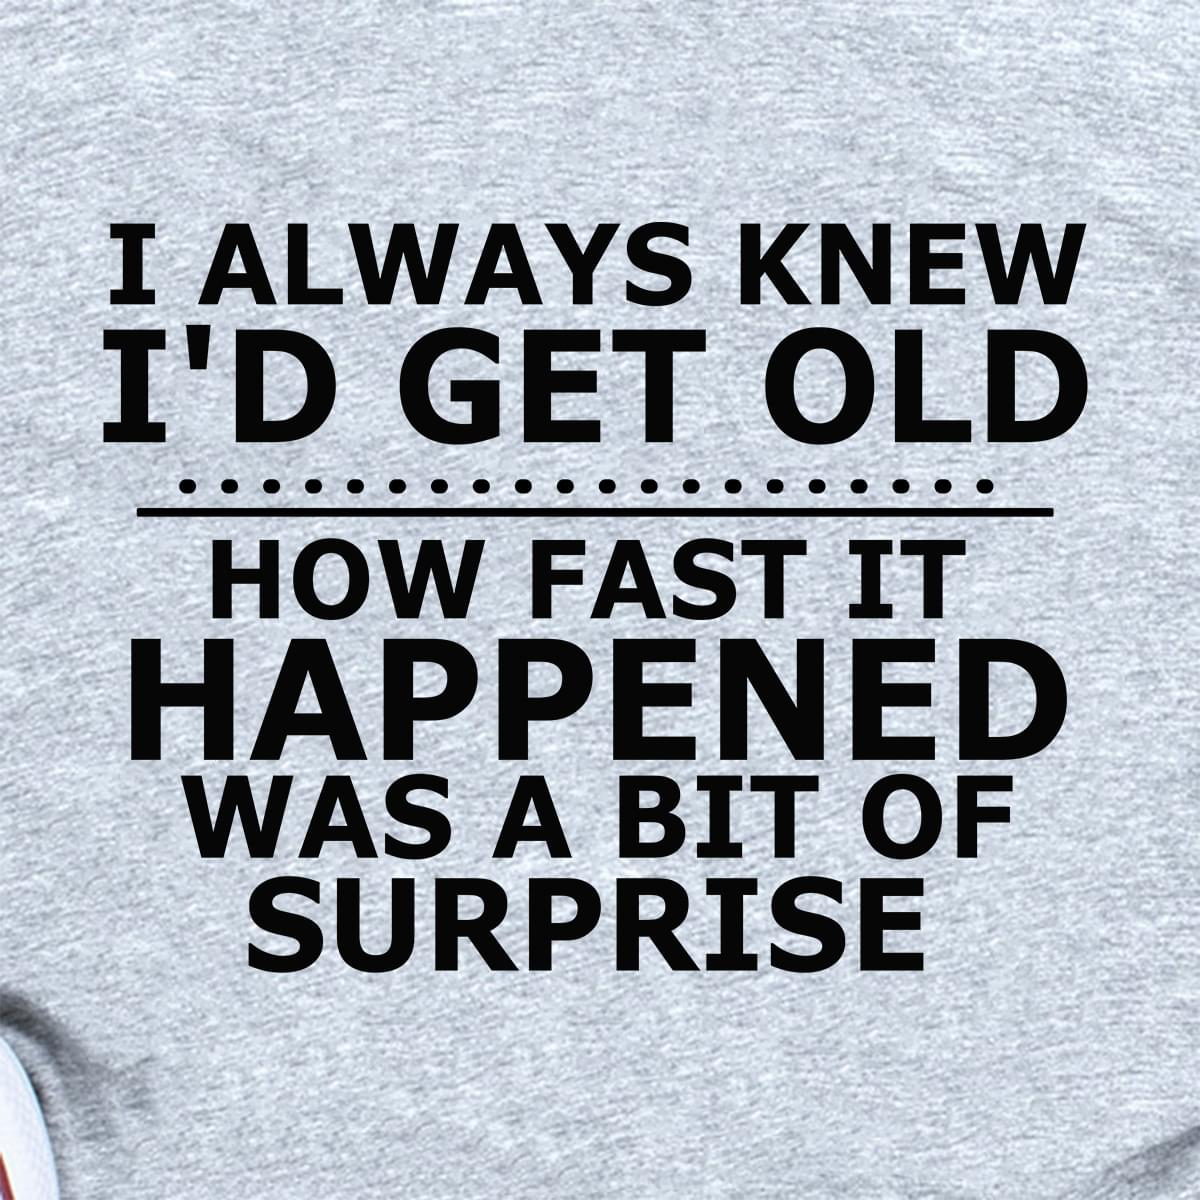 I Always Knew Id Get Old How Fast It Happened Was A Bit Of Surprise cotton t-shirt Hoodie Mug